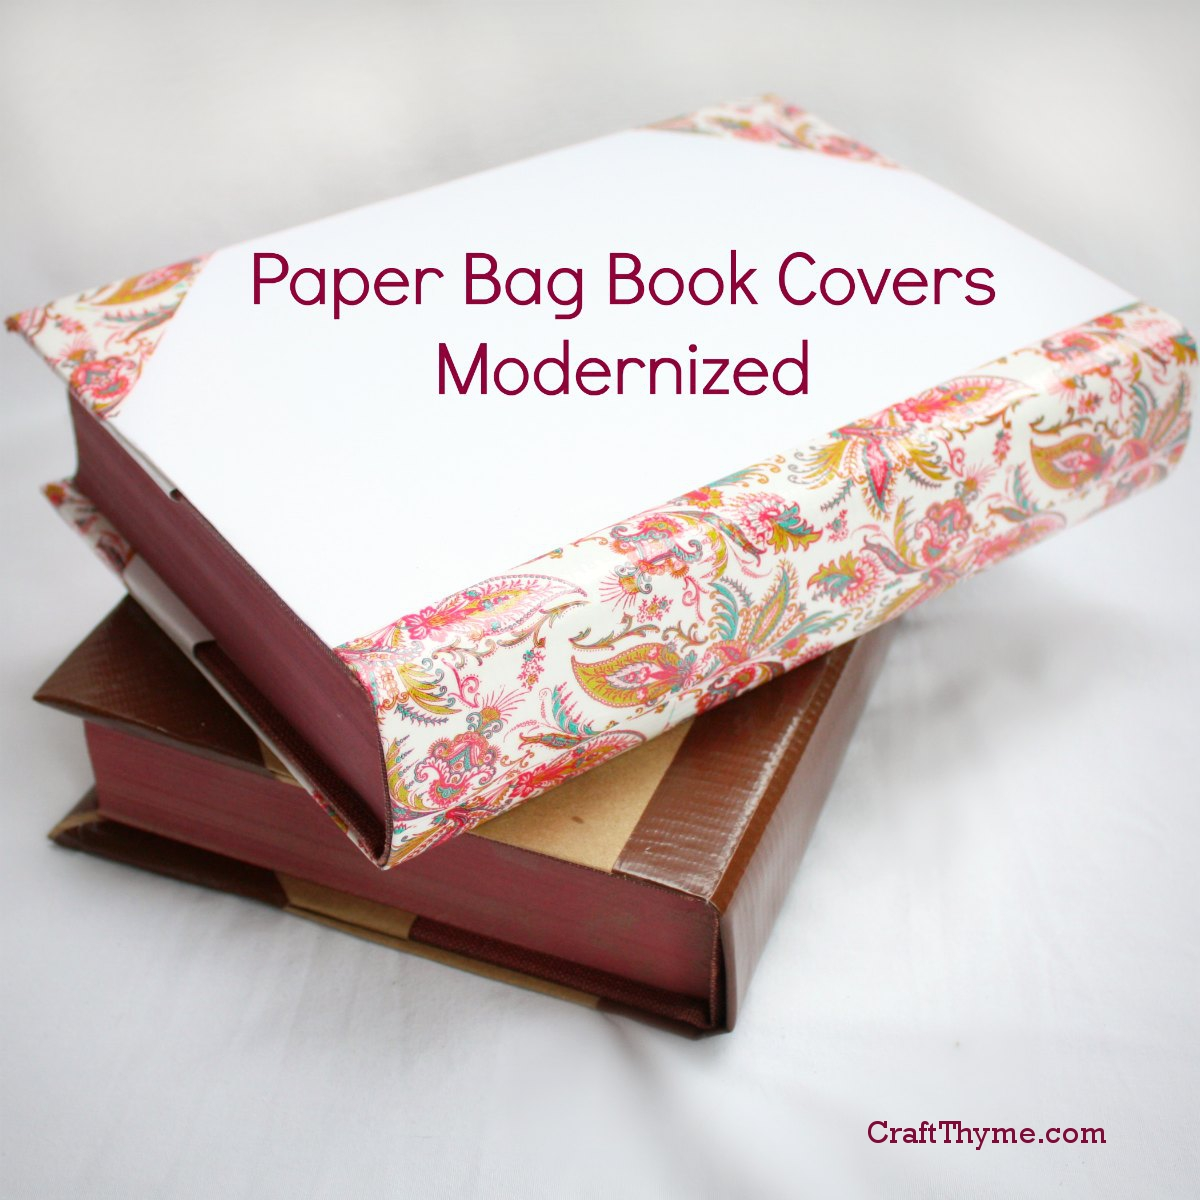 Diy Book Cover Paper Bag : Old fashioned paper bag book covers craft thyme